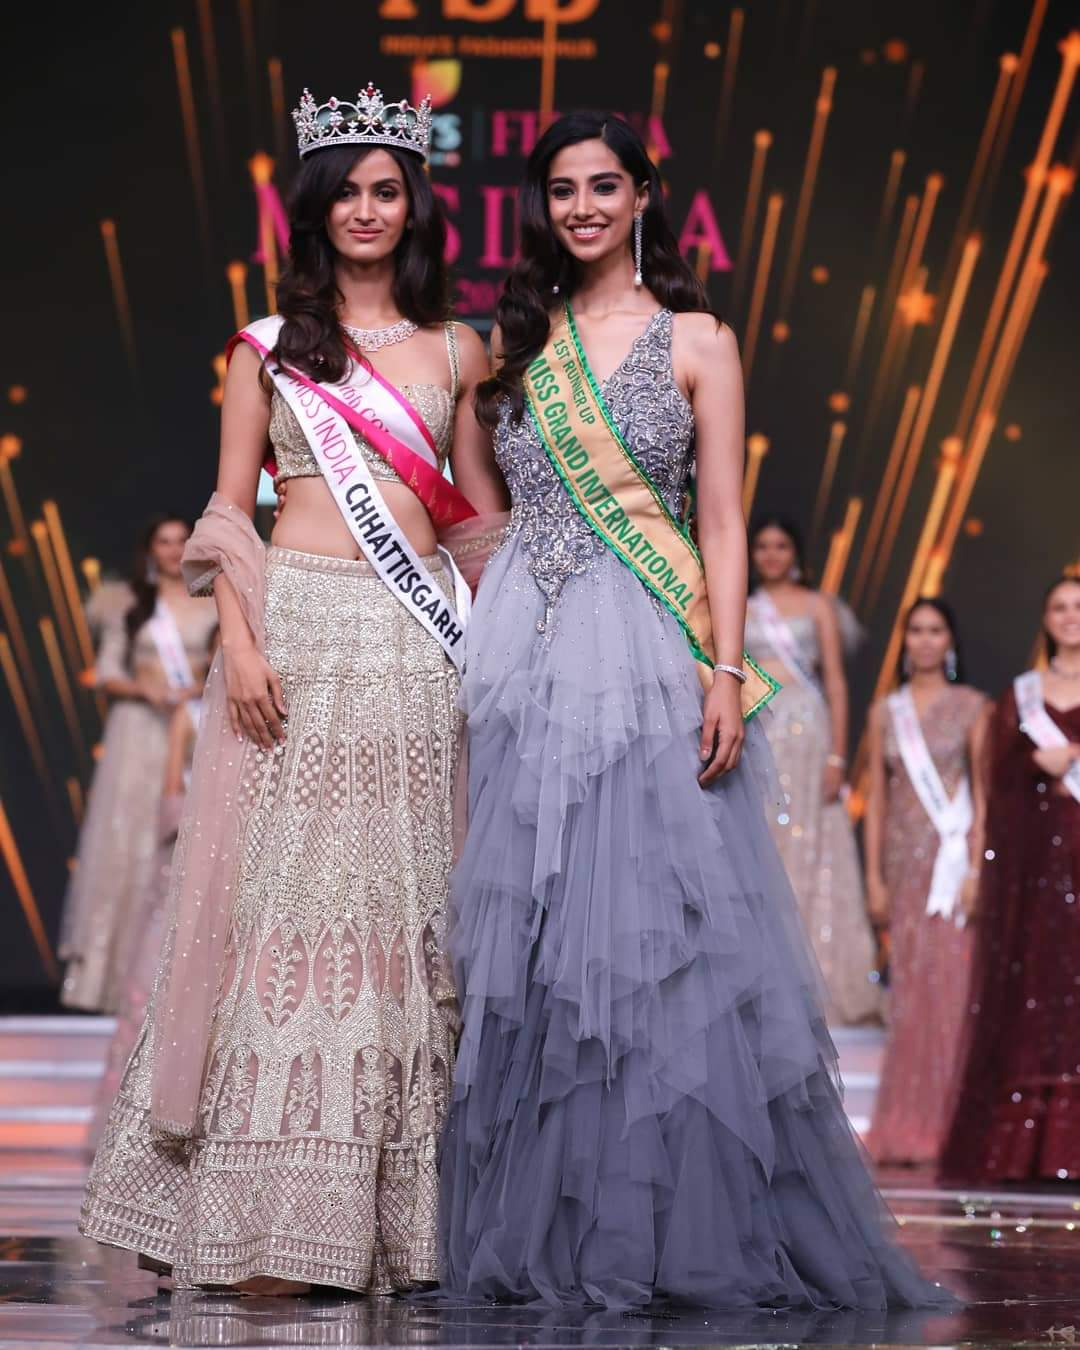 Girl From Chhattisgarh Wins Miss Grand India 2019 Title